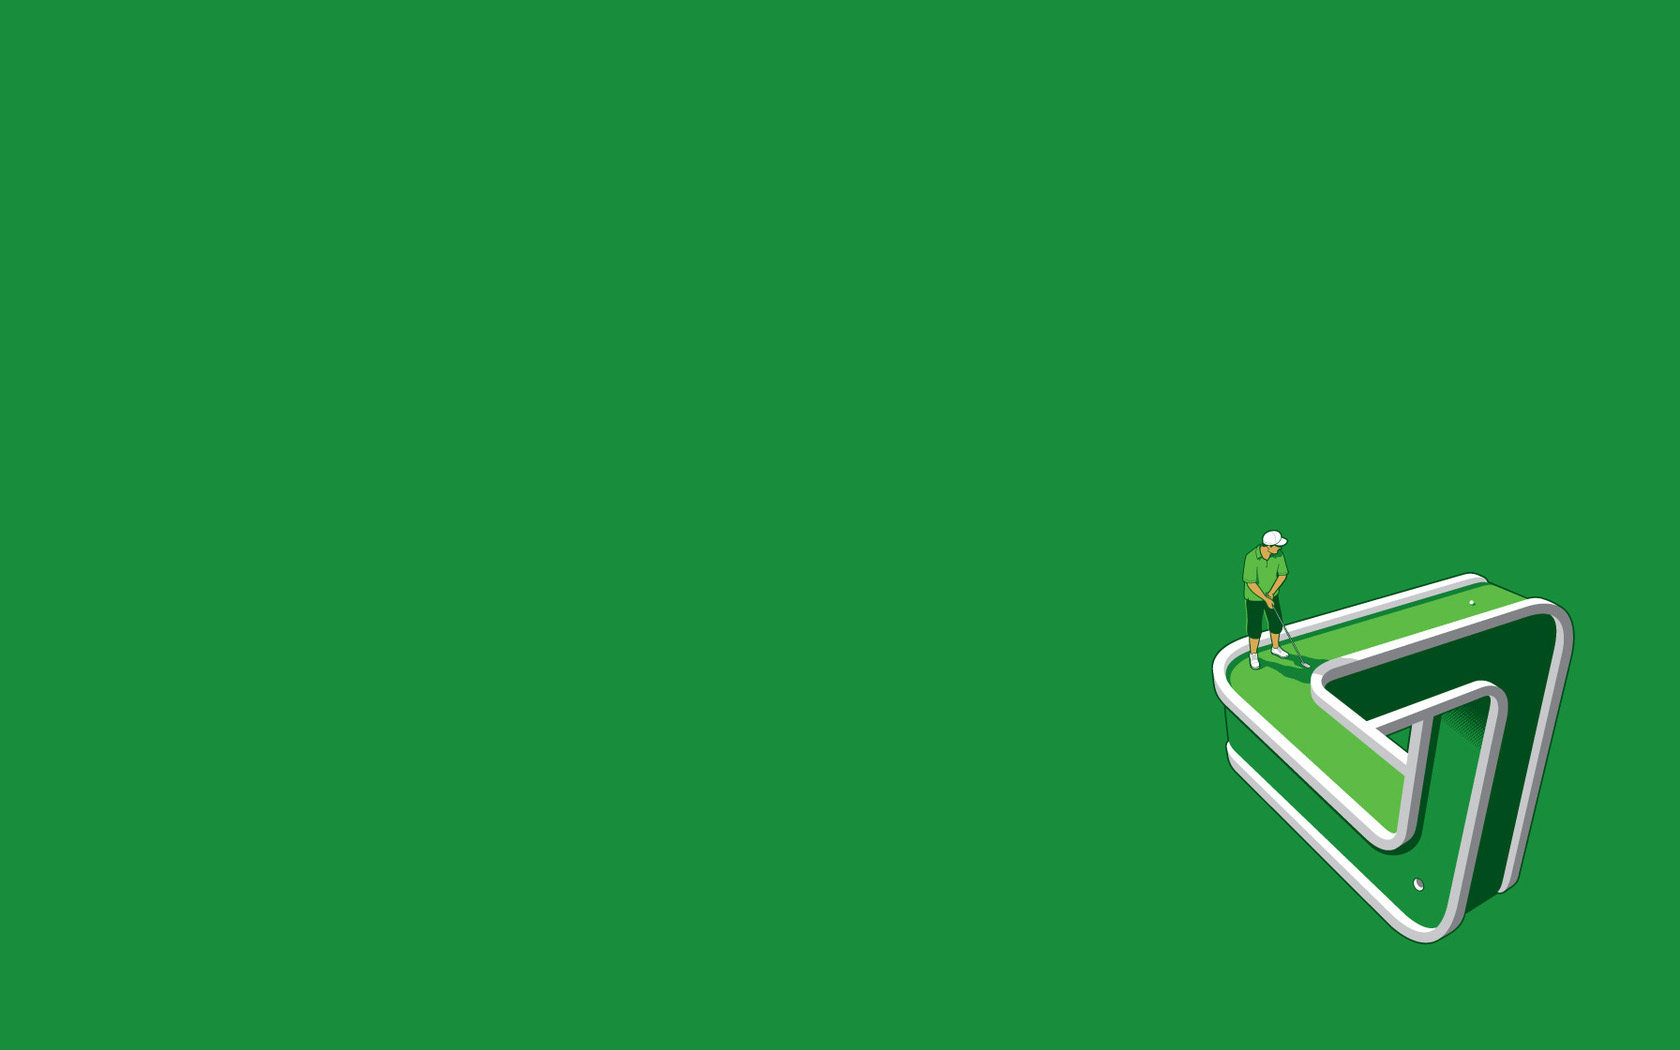 3D Golf PPT Backgrounds